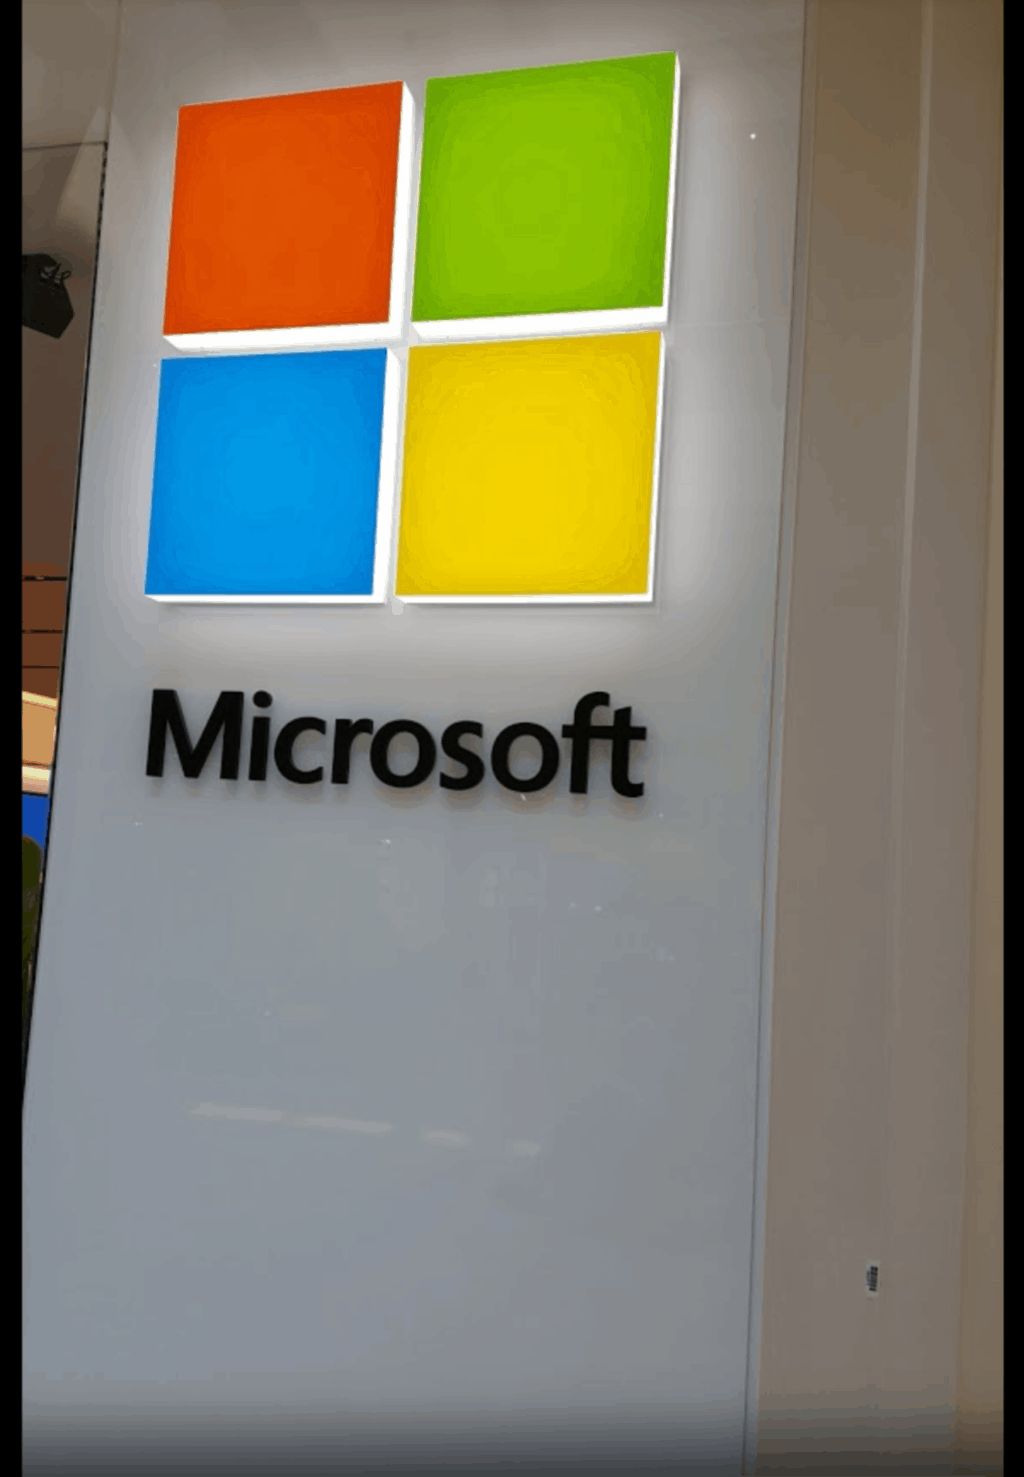 Microsoft news recap: Outlook to sync email signature across devices, Microsoft Authenticator can now backup to the cloud on Android, and more